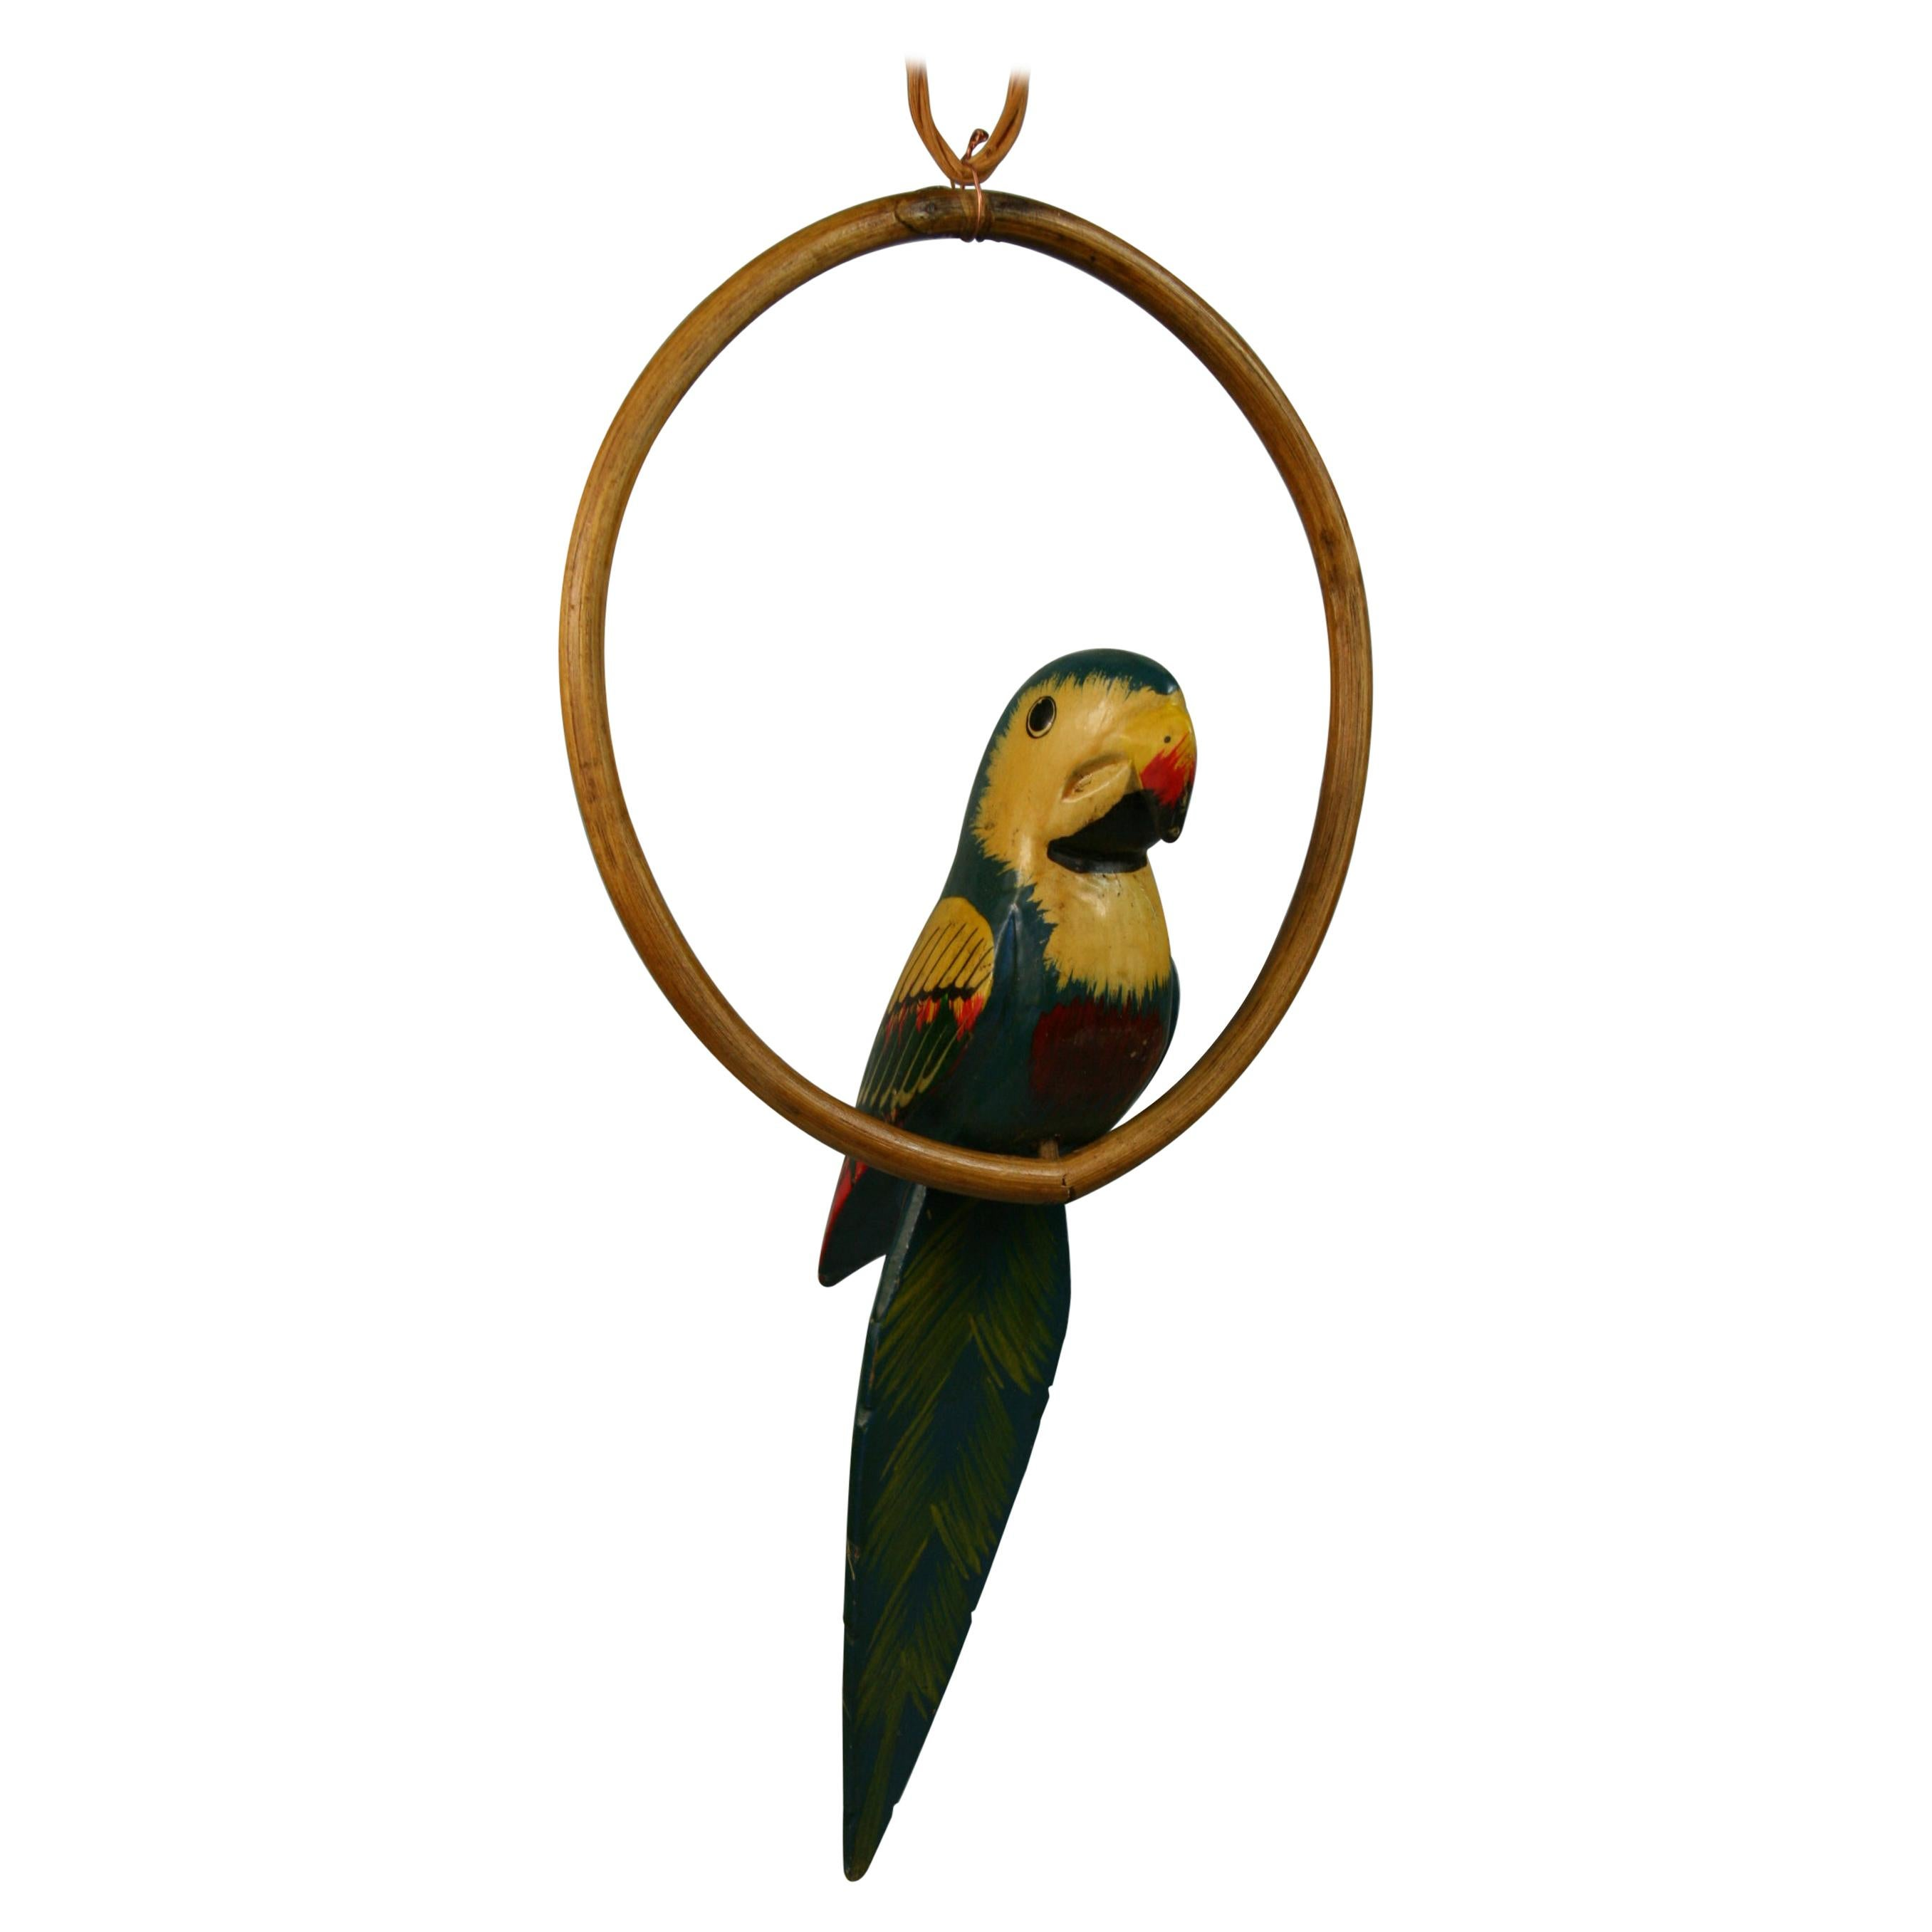 Folk Art Hand Carved and Painted Green Parrot Sculpture on a Swing